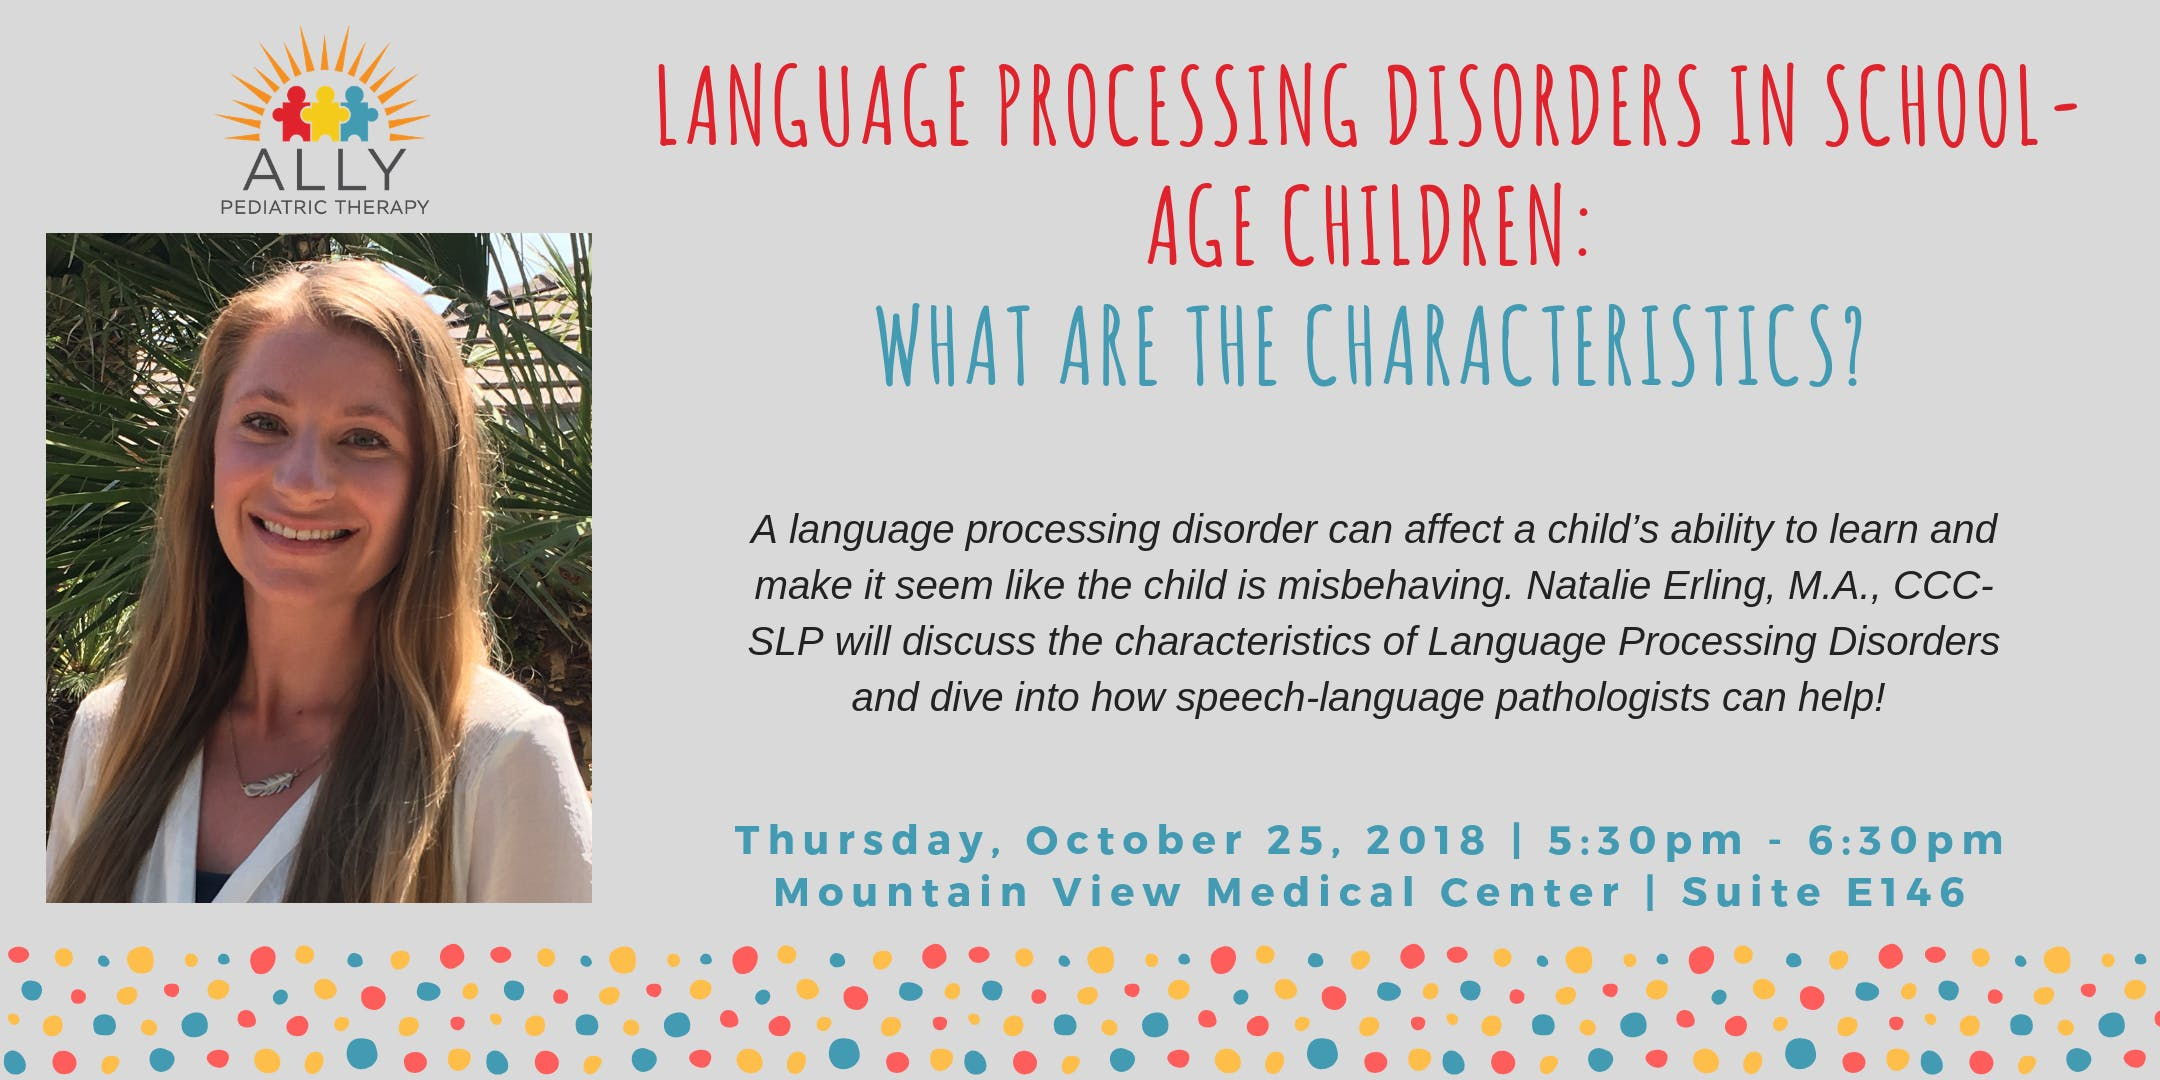 LANGUAGE PROCESSING DISORDERS IN SCHOOL-AGE CHILDREN: WHAT ARE THE CHARACTERISTICS?